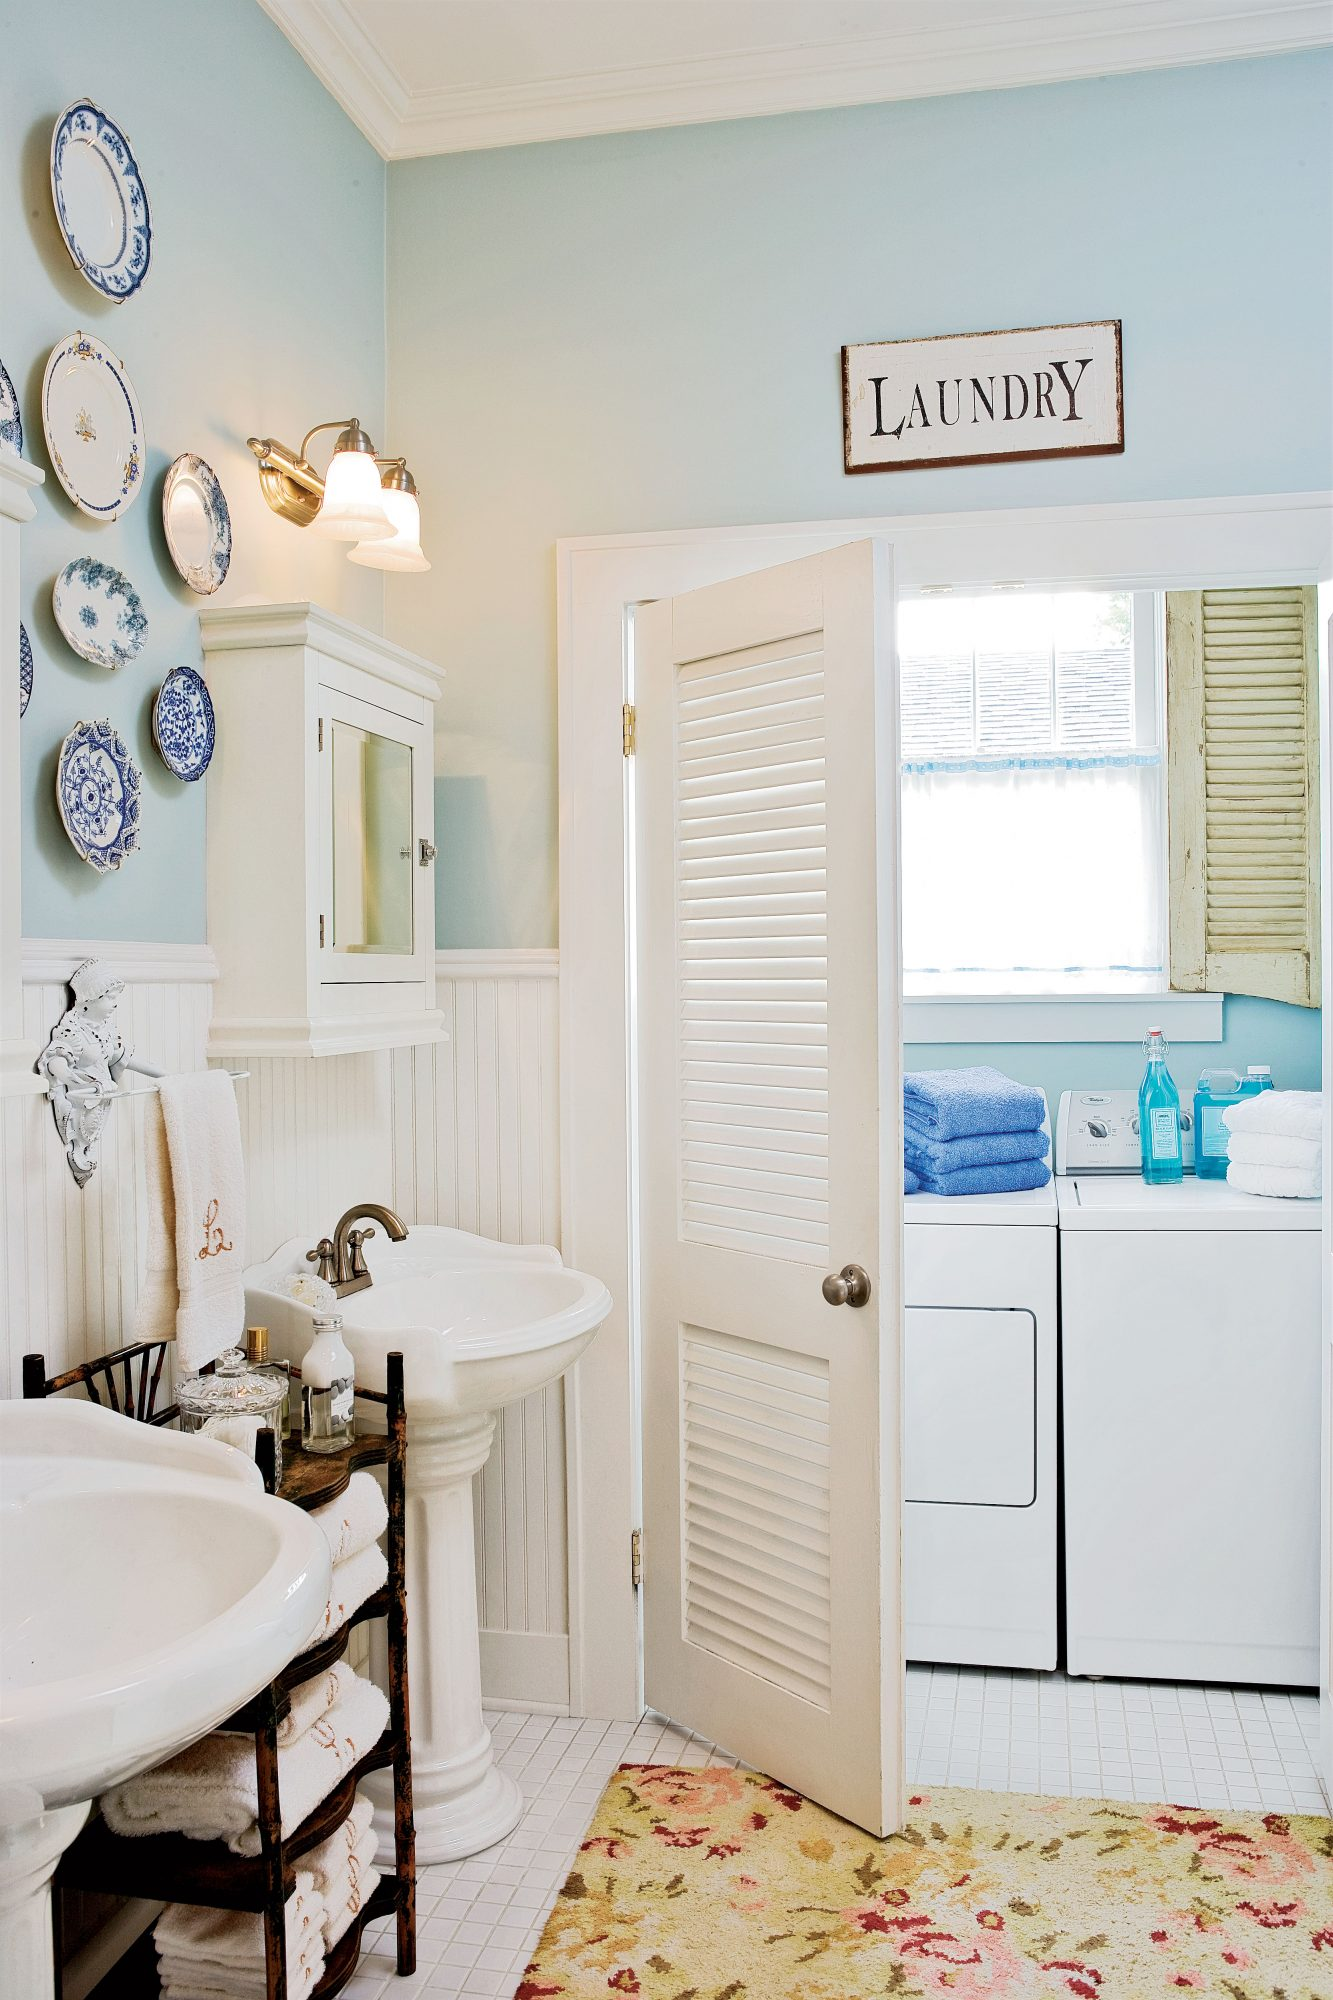 Camouflage a Laundry Room